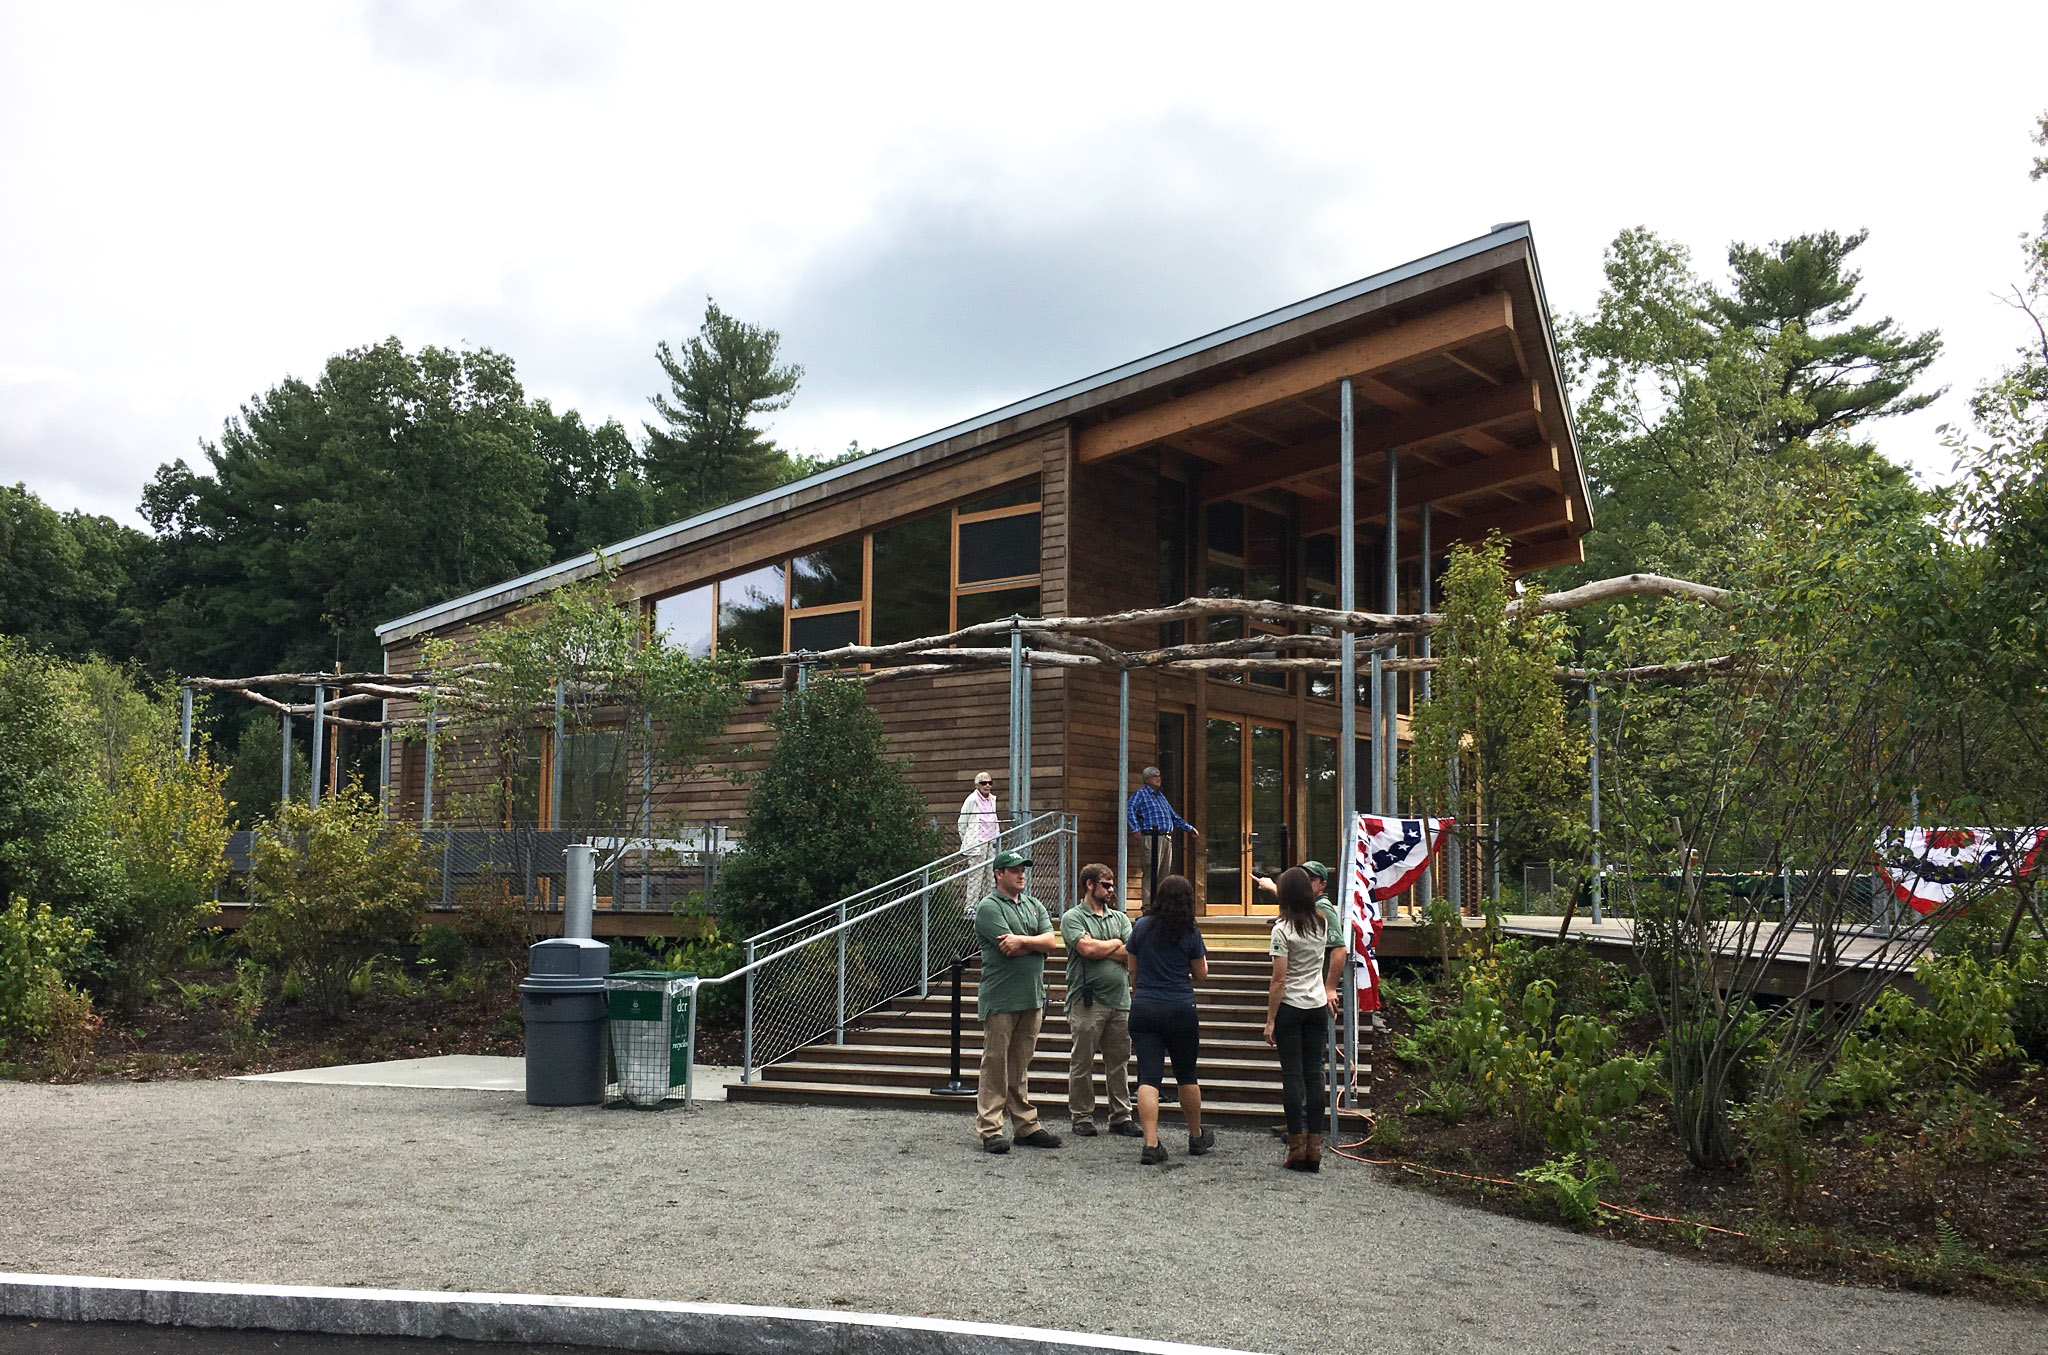 The LEED Gold Walden Pond Visitor Center, Concord, MA.